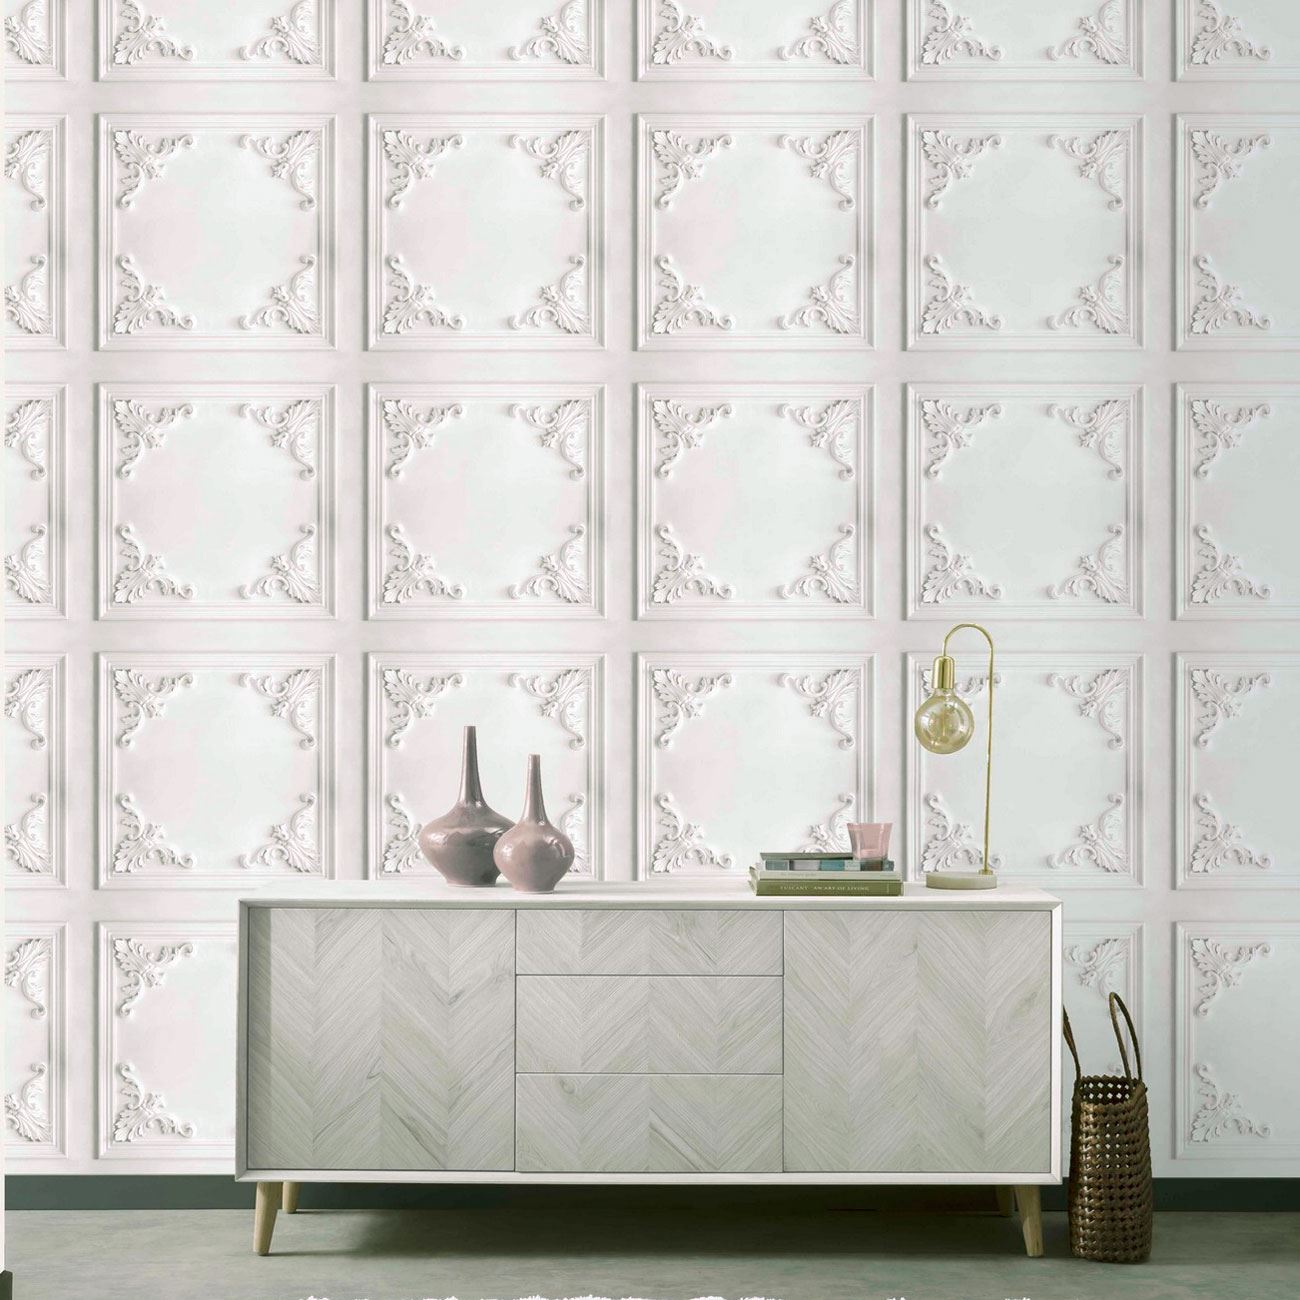 NAVY REALISTIC WOOD PANEL ARTHOUSE PANEL 3D EFFECT WALLPAPER WHITE